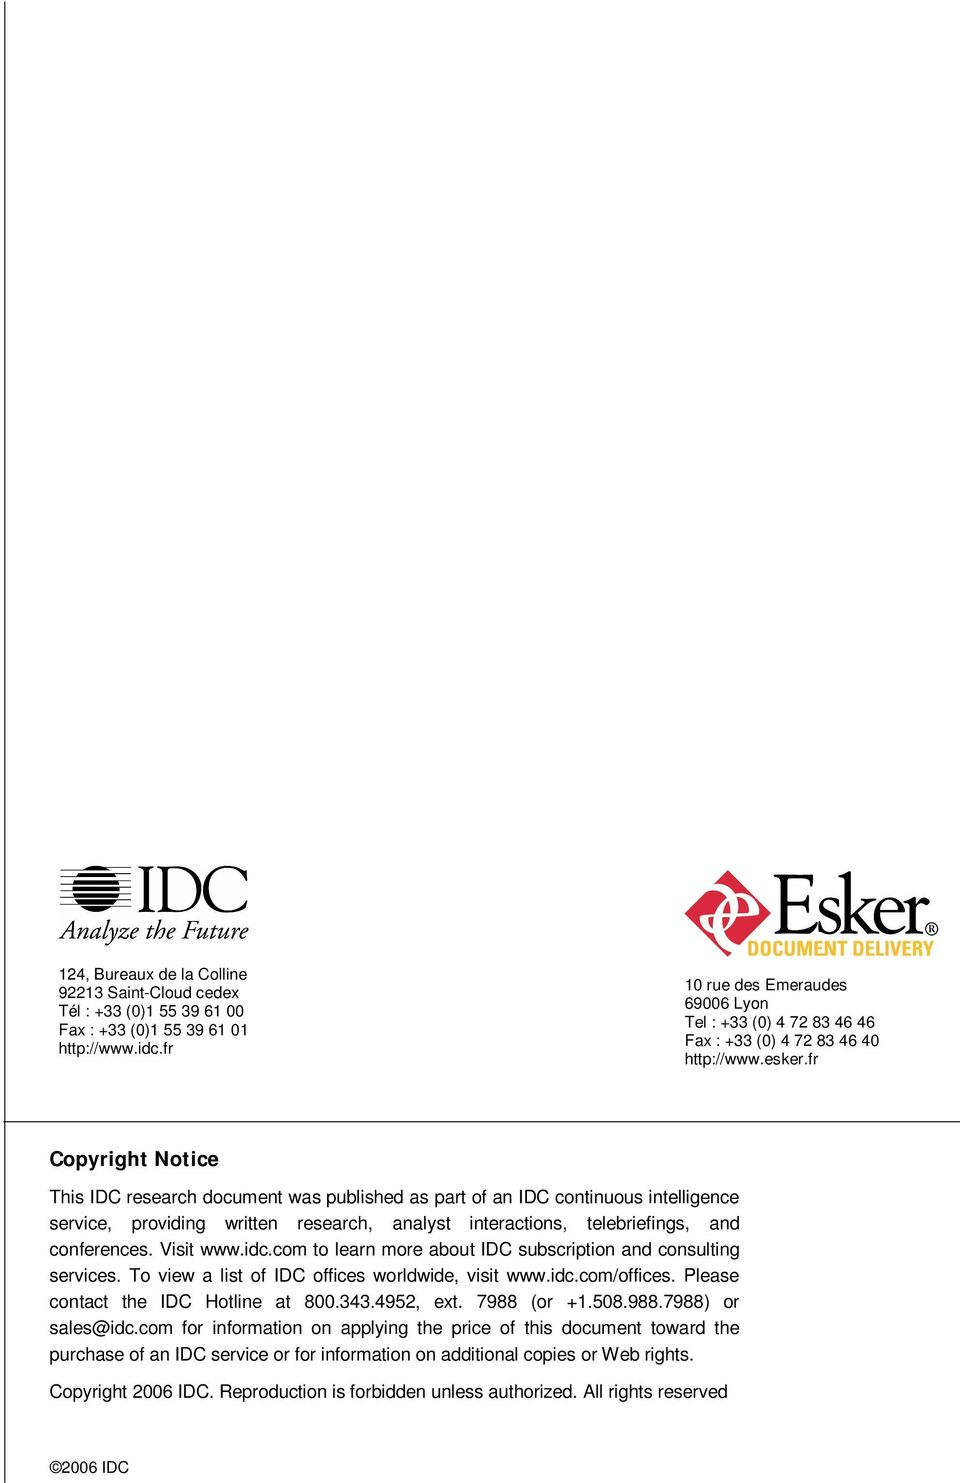 fr Copyright Notice This IDC research document was published as part of an IDC continuous intelligence service, providing written research, analyst interactions, telebriefings, and conferences.